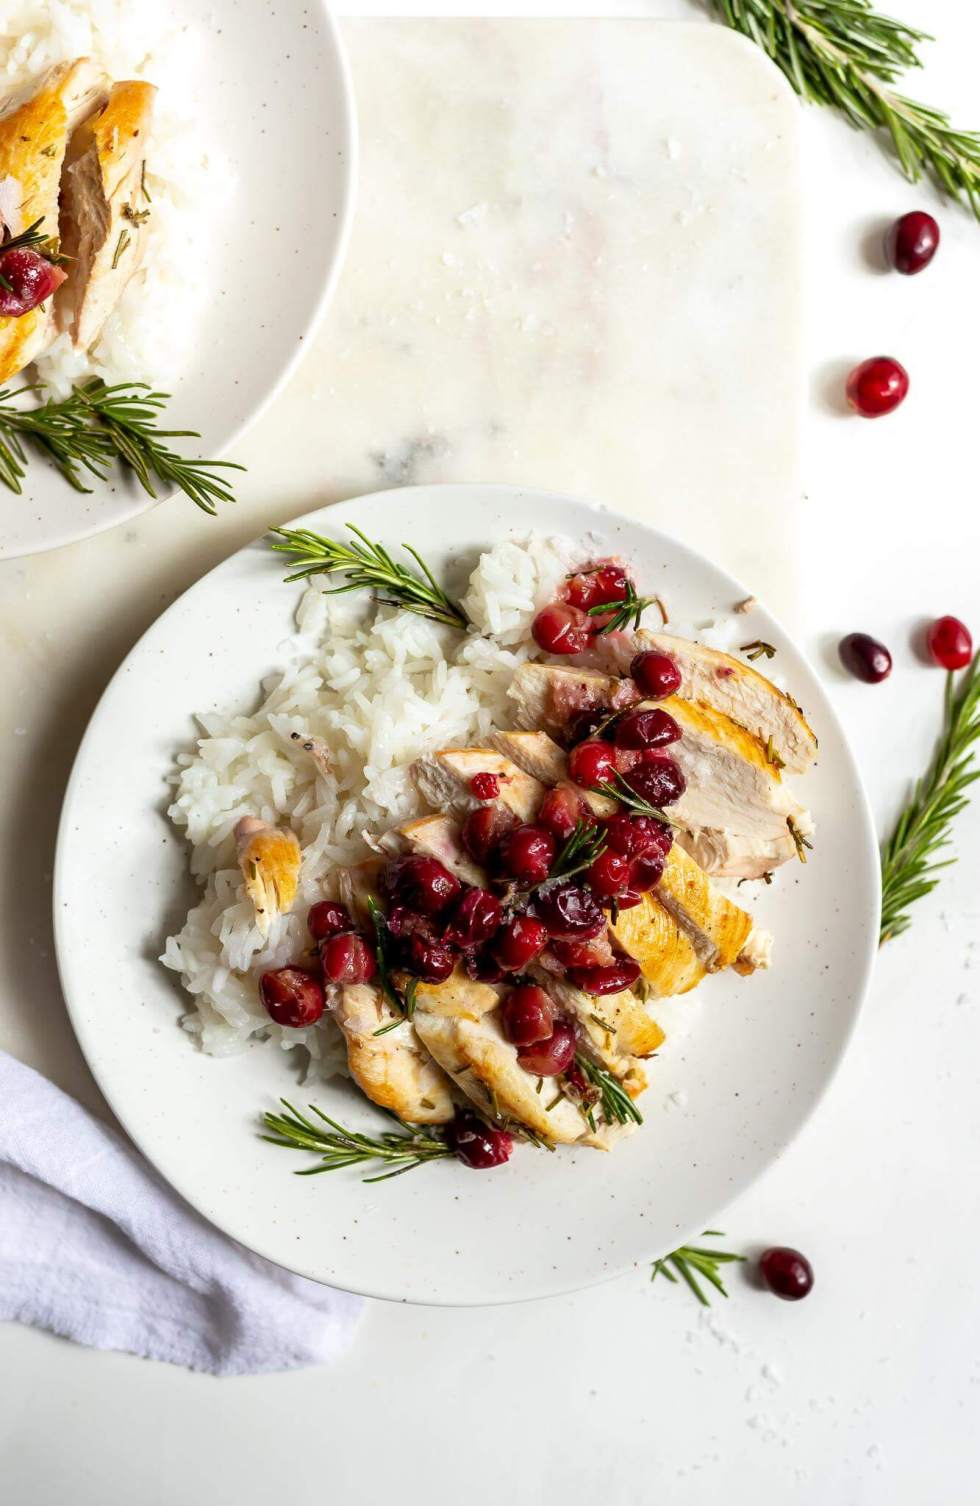 sliced rosemary chicken topped with cranberries served with white rice on a white plate